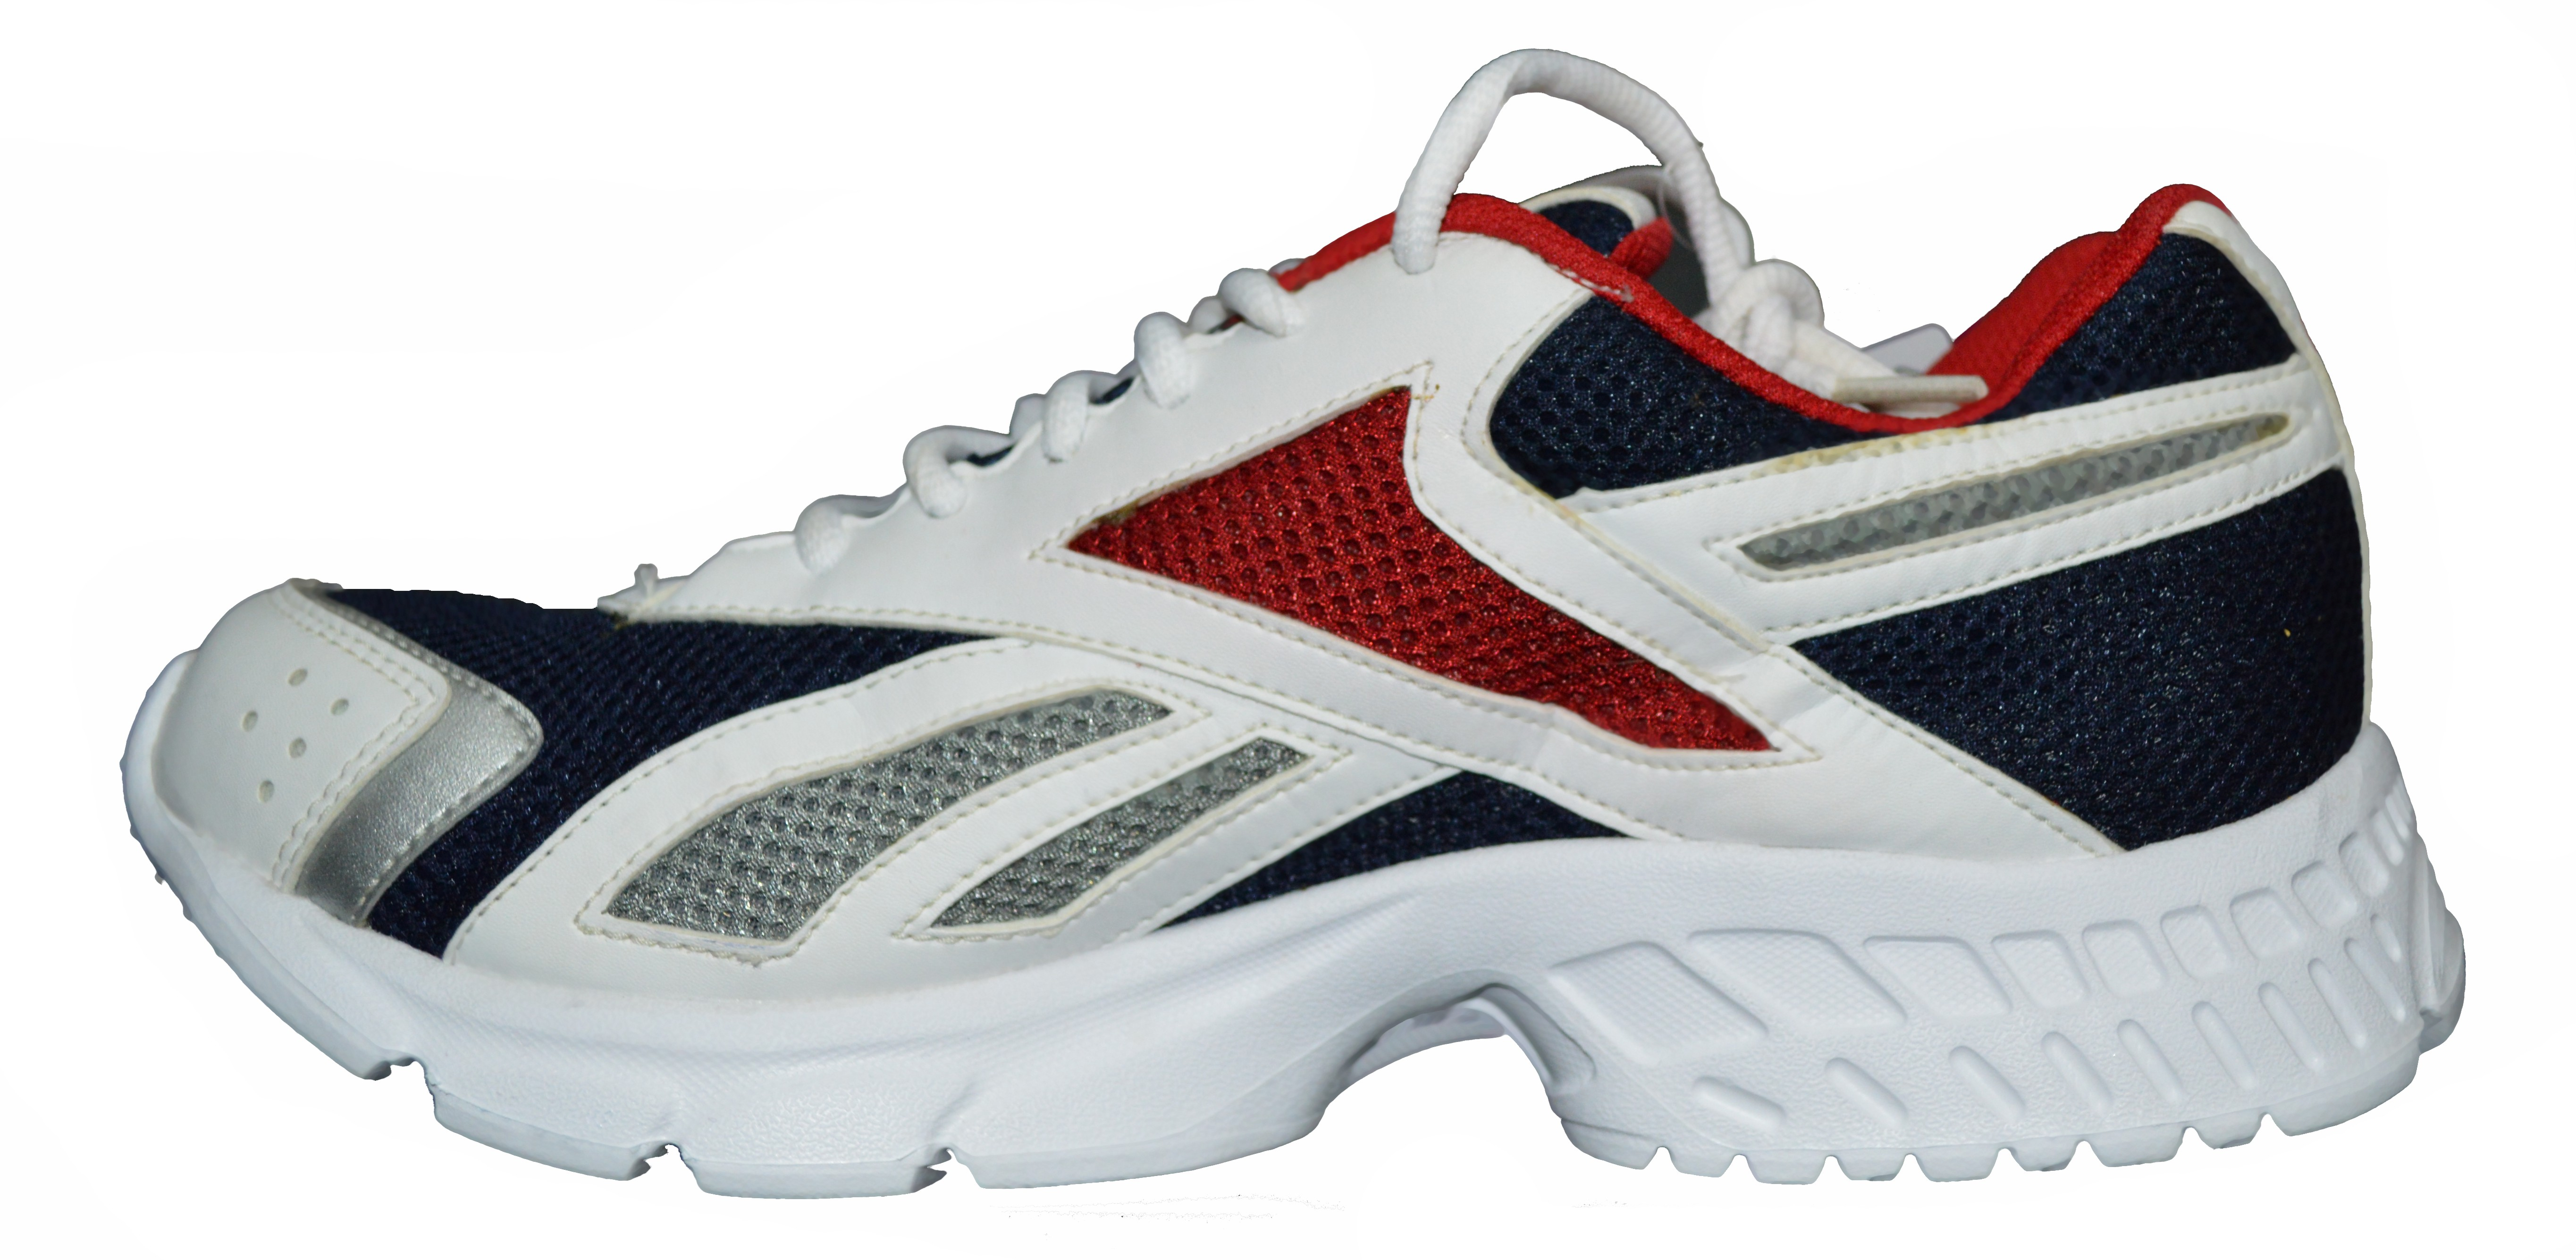 rs 99969 for reebok literide af sports shoes